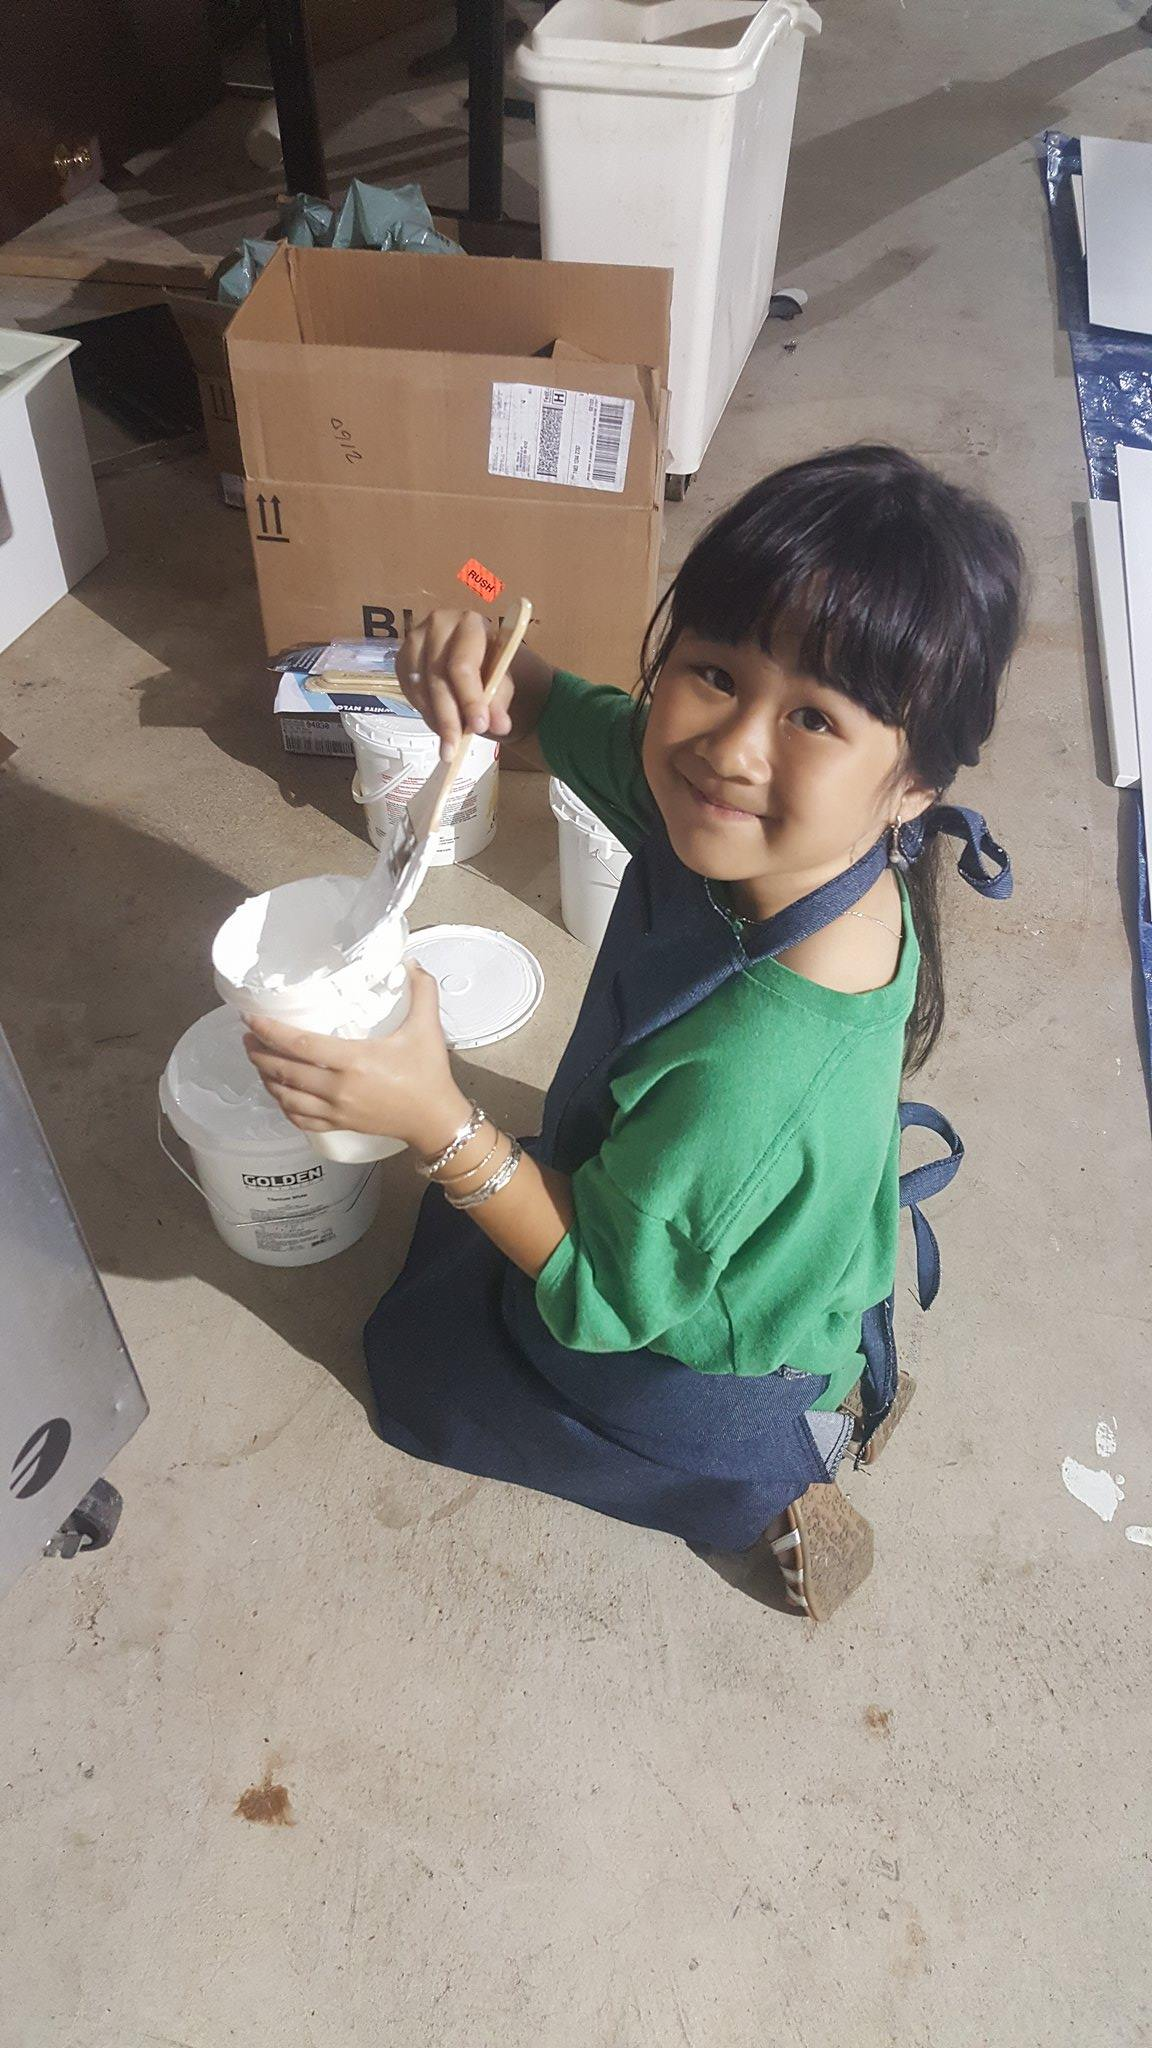 Our youngest member, Kimberly (7 yrs old), came in to help with work and volunteer to her time!             (Photo: Kathy)